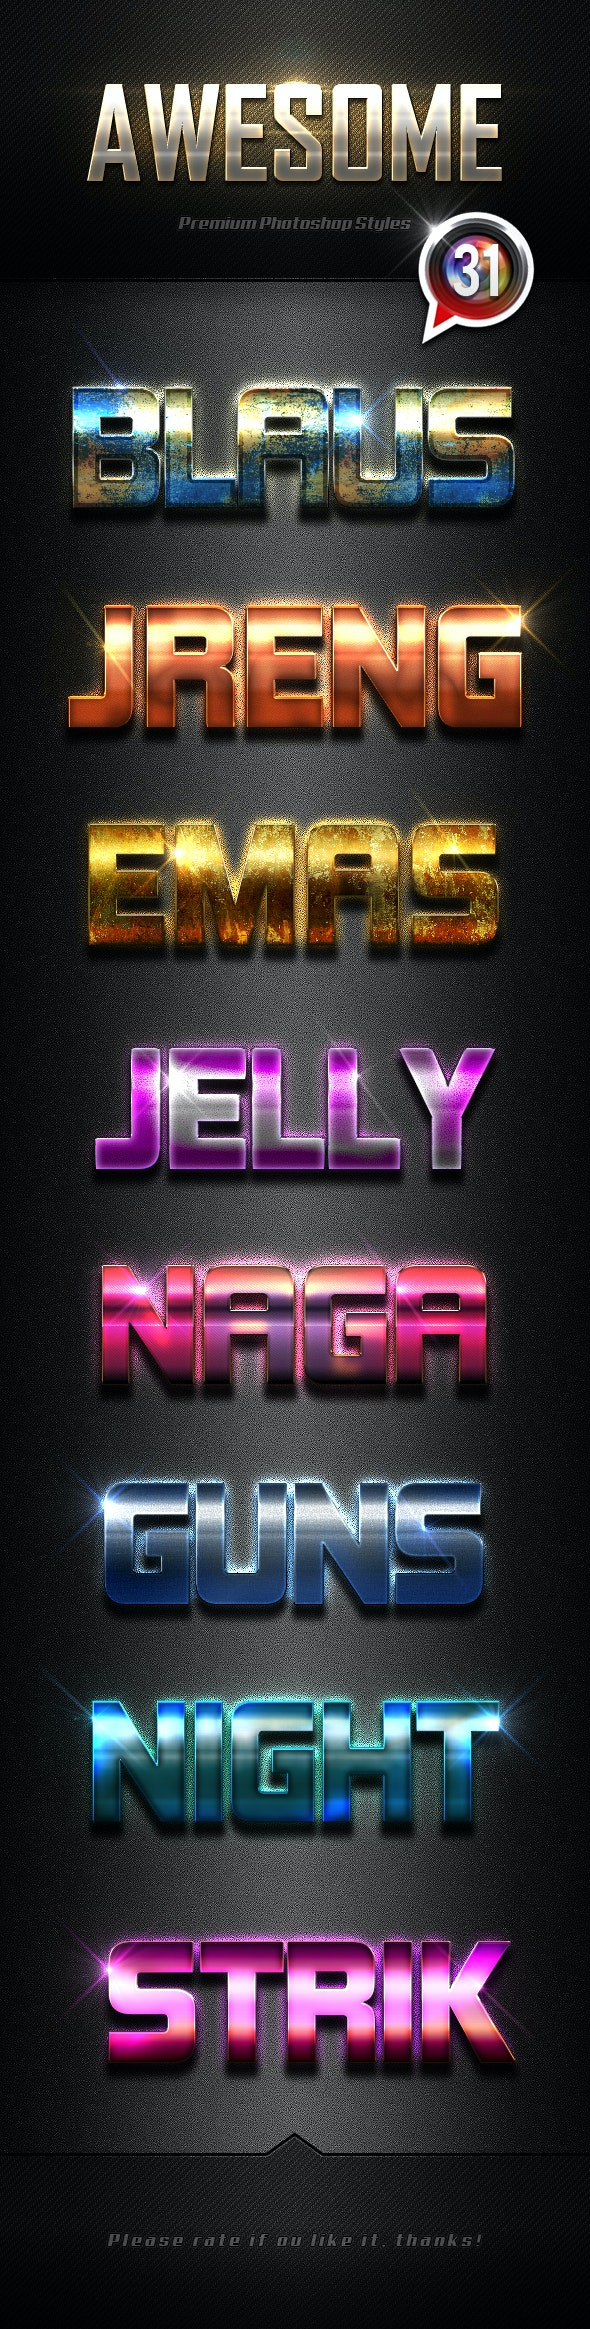 Photoshop Text Effects Vol.31 - Text Effects Styles